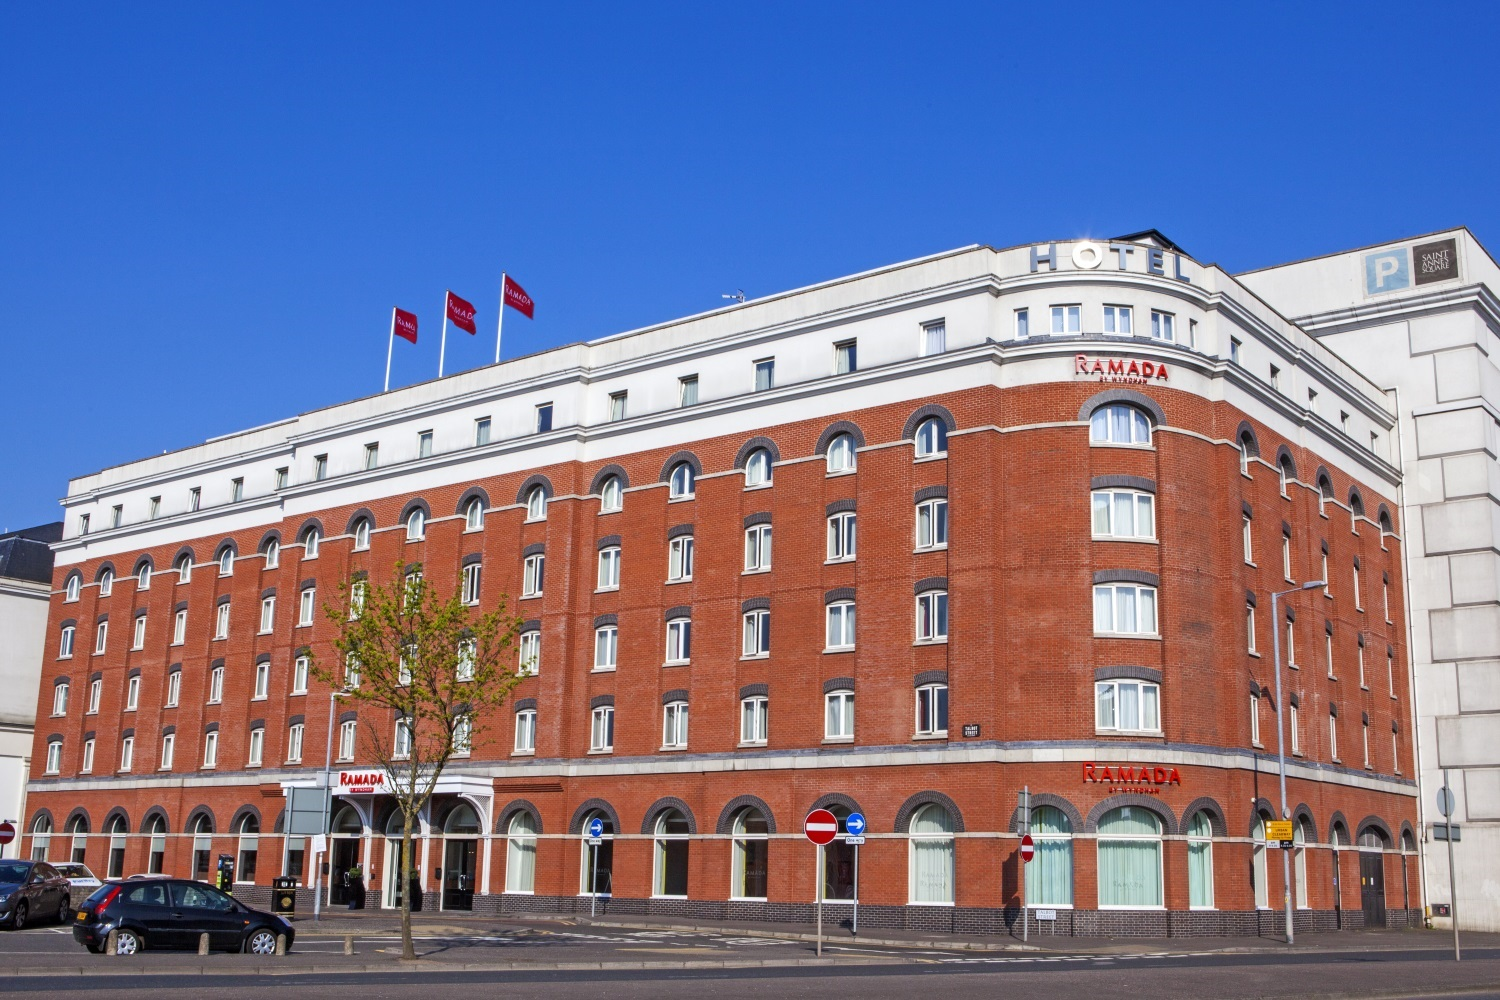 Facelift and rebrand for former Ramada Encore